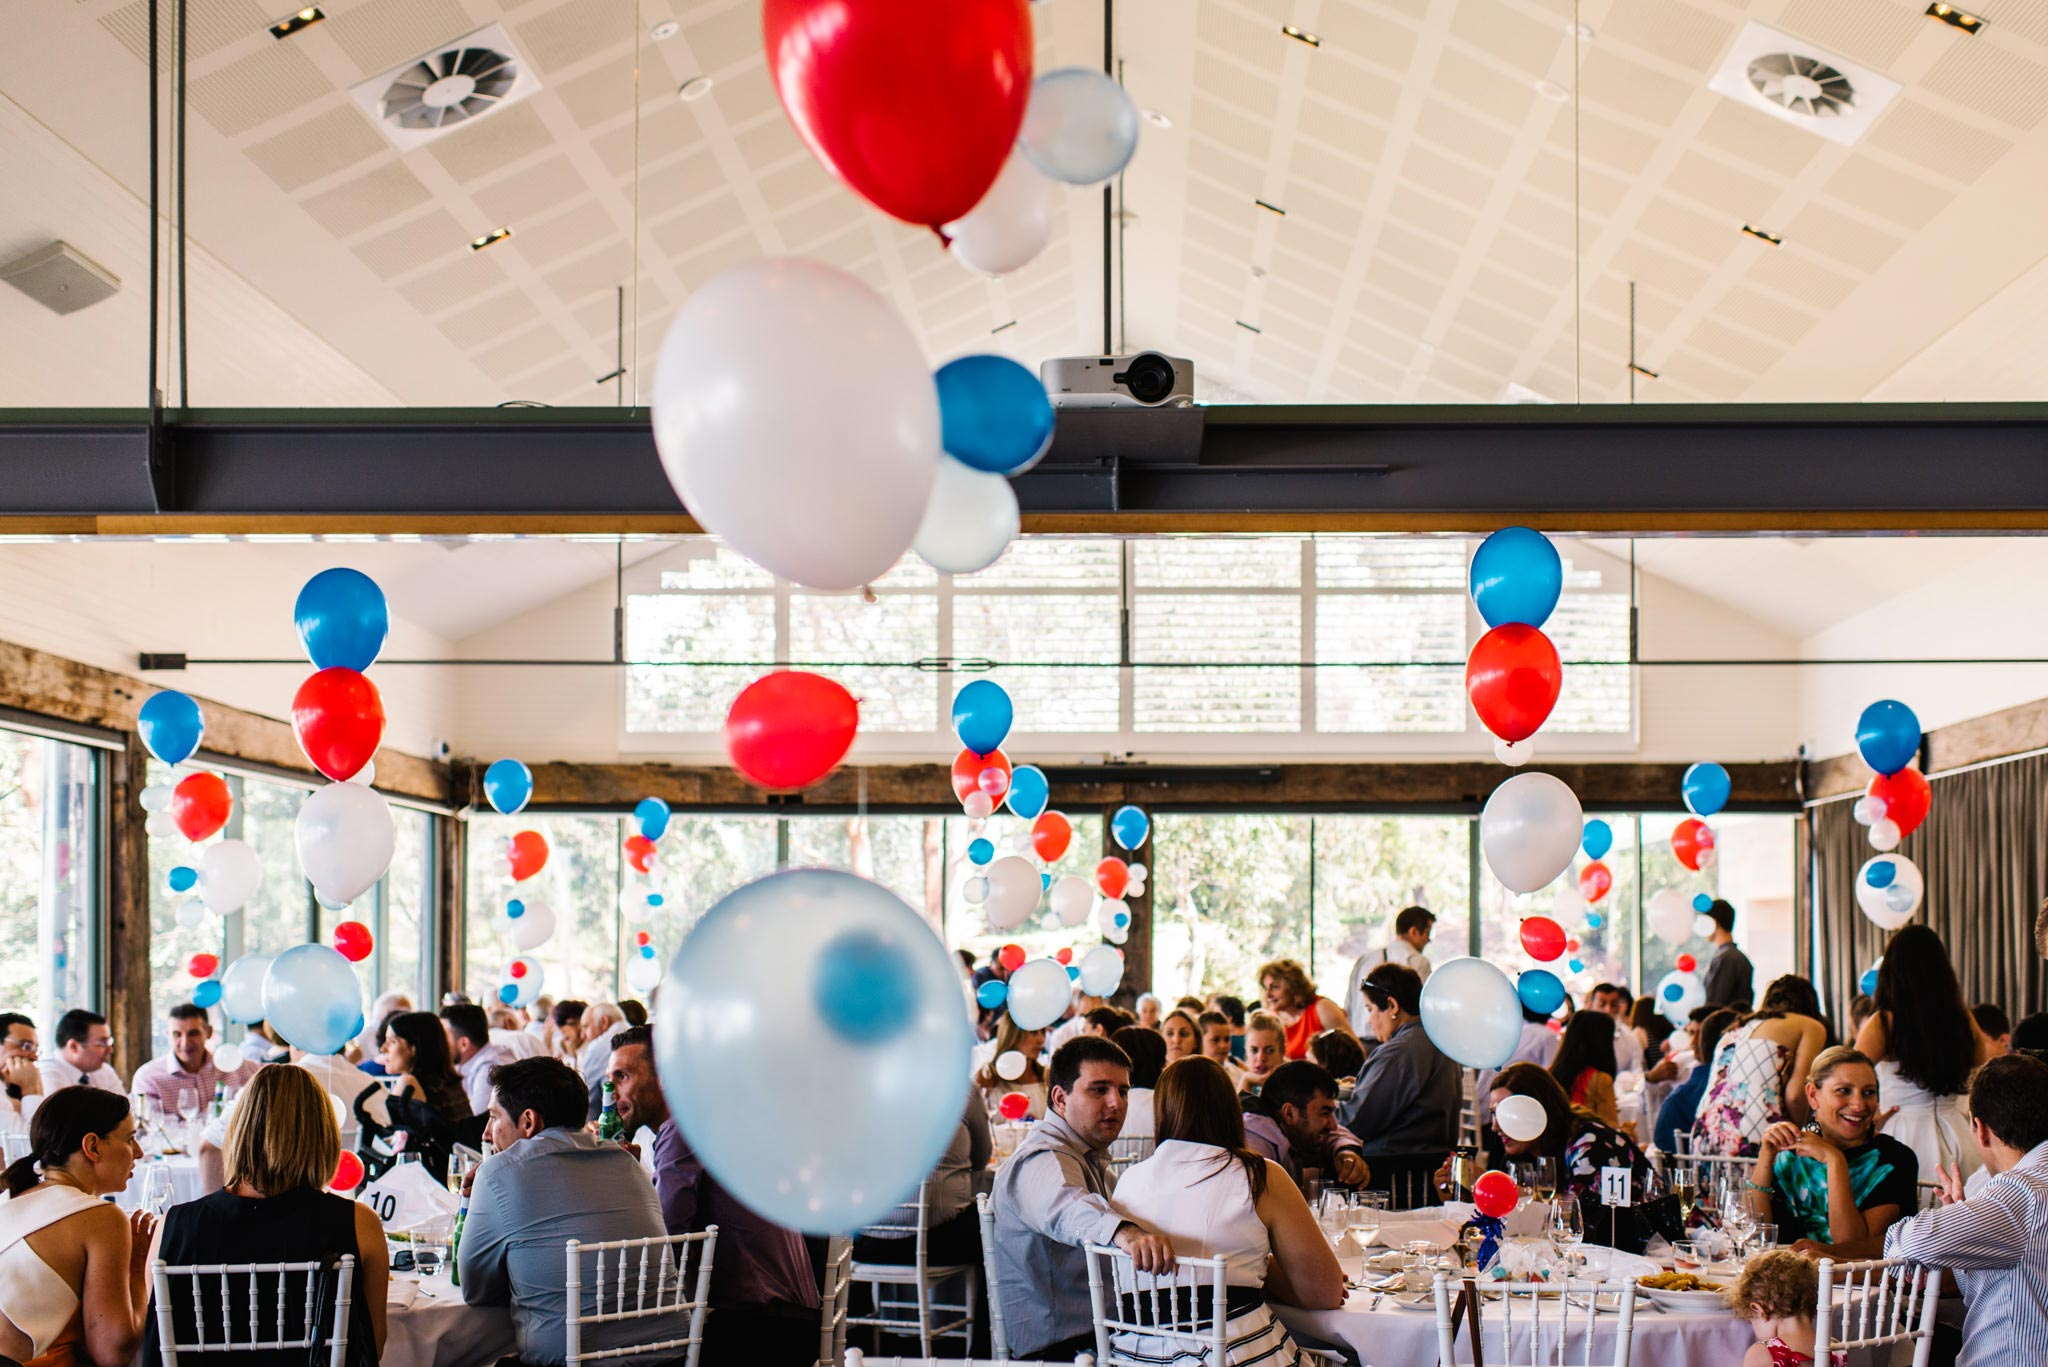 Blue, red and white helium balloons at Deckhouse christening